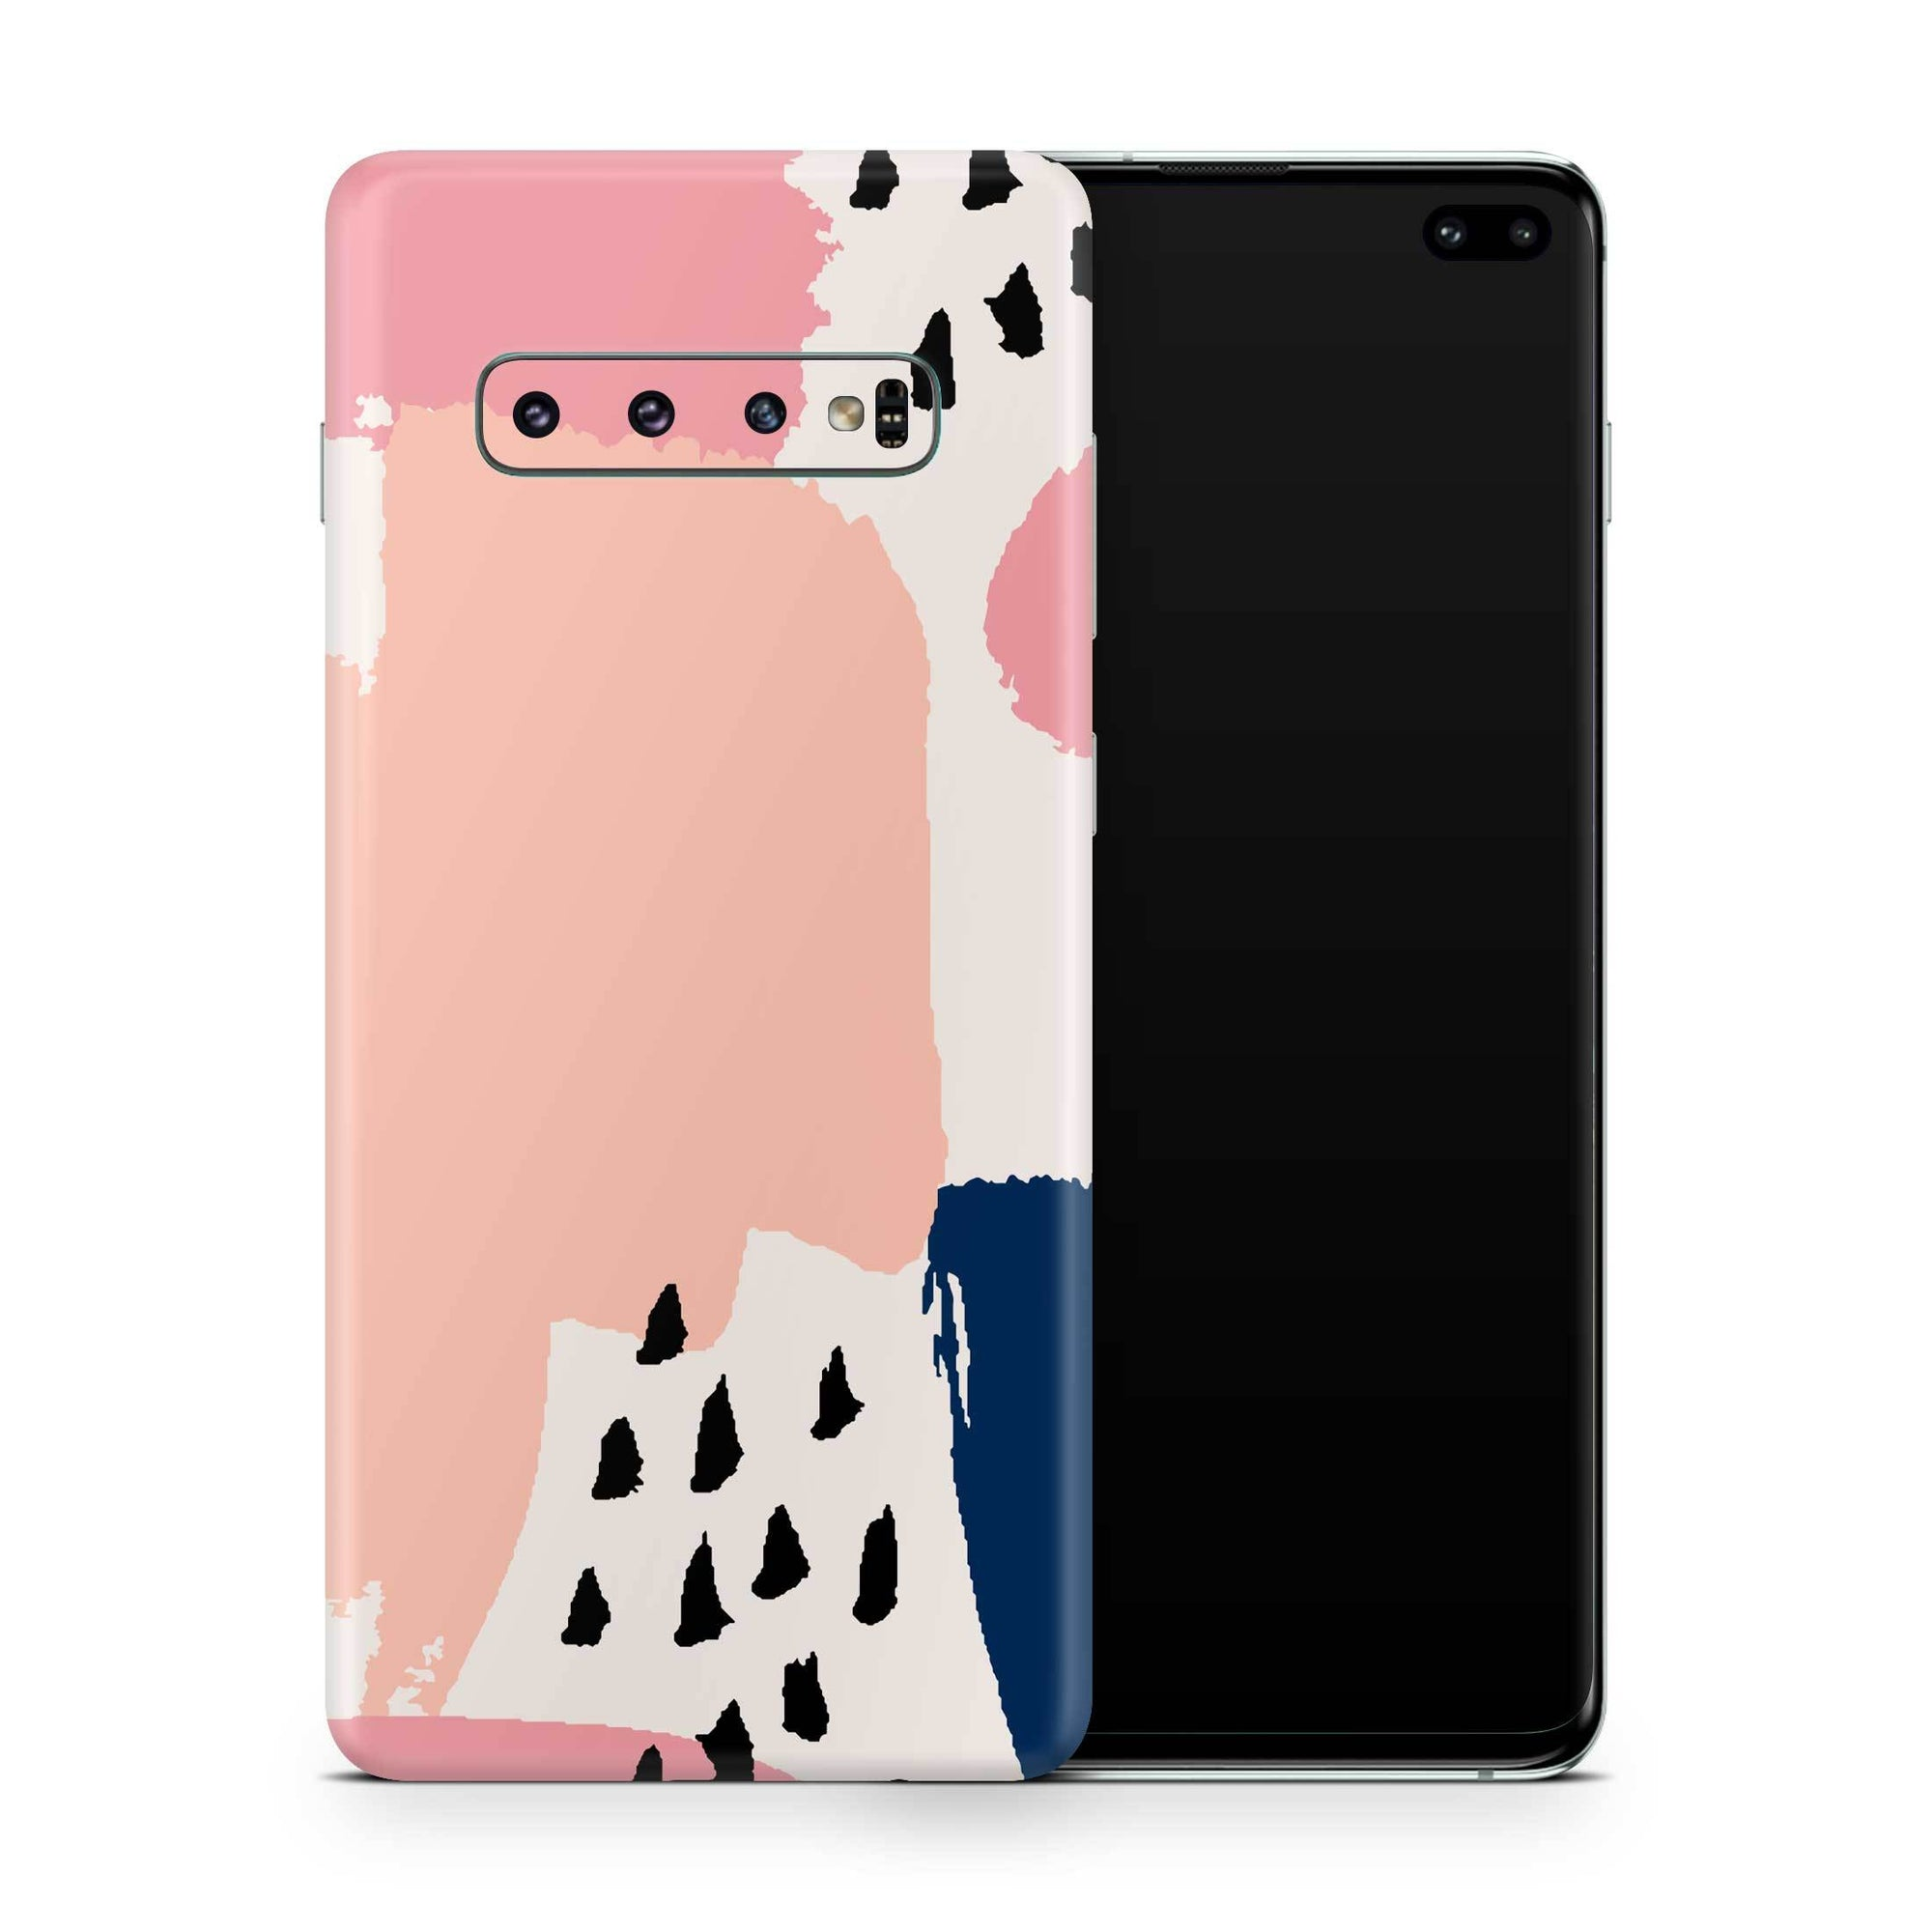 Miami Vice Galaxy S10e Skin + Case